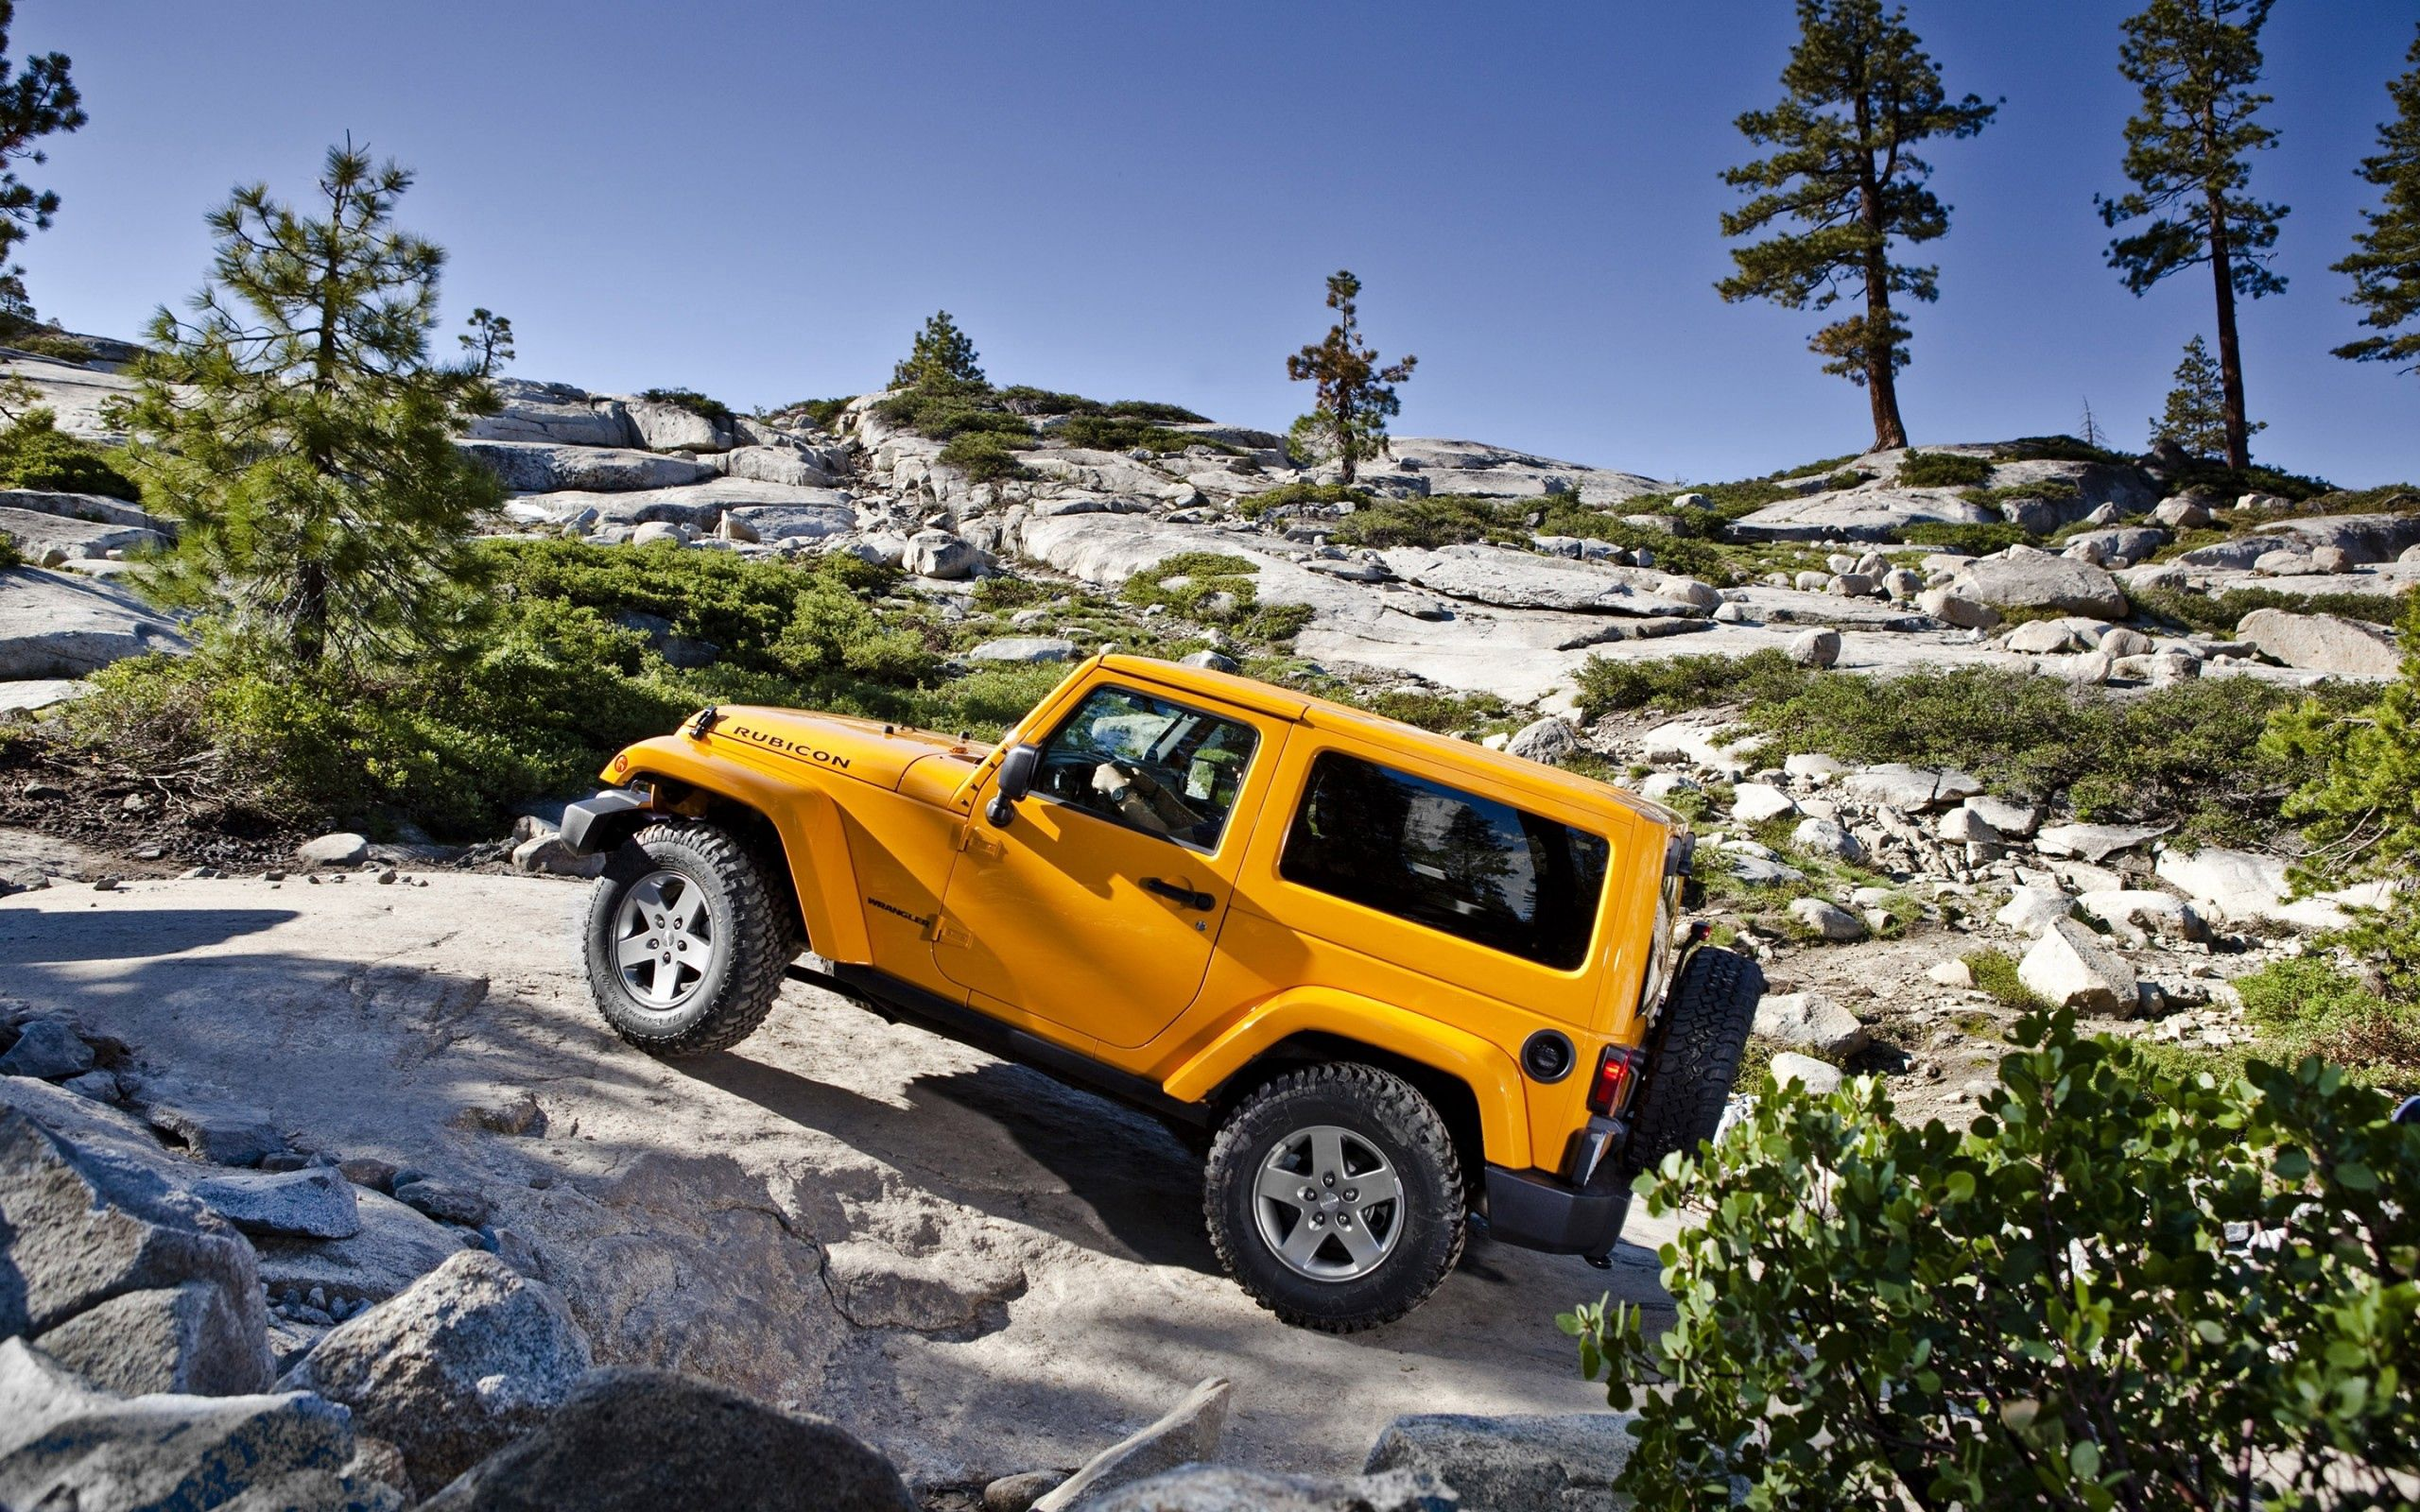 138046 download wallpaper Cars, Jeep, Wrangler, Rengler, Mountains screensavers and pictures for free